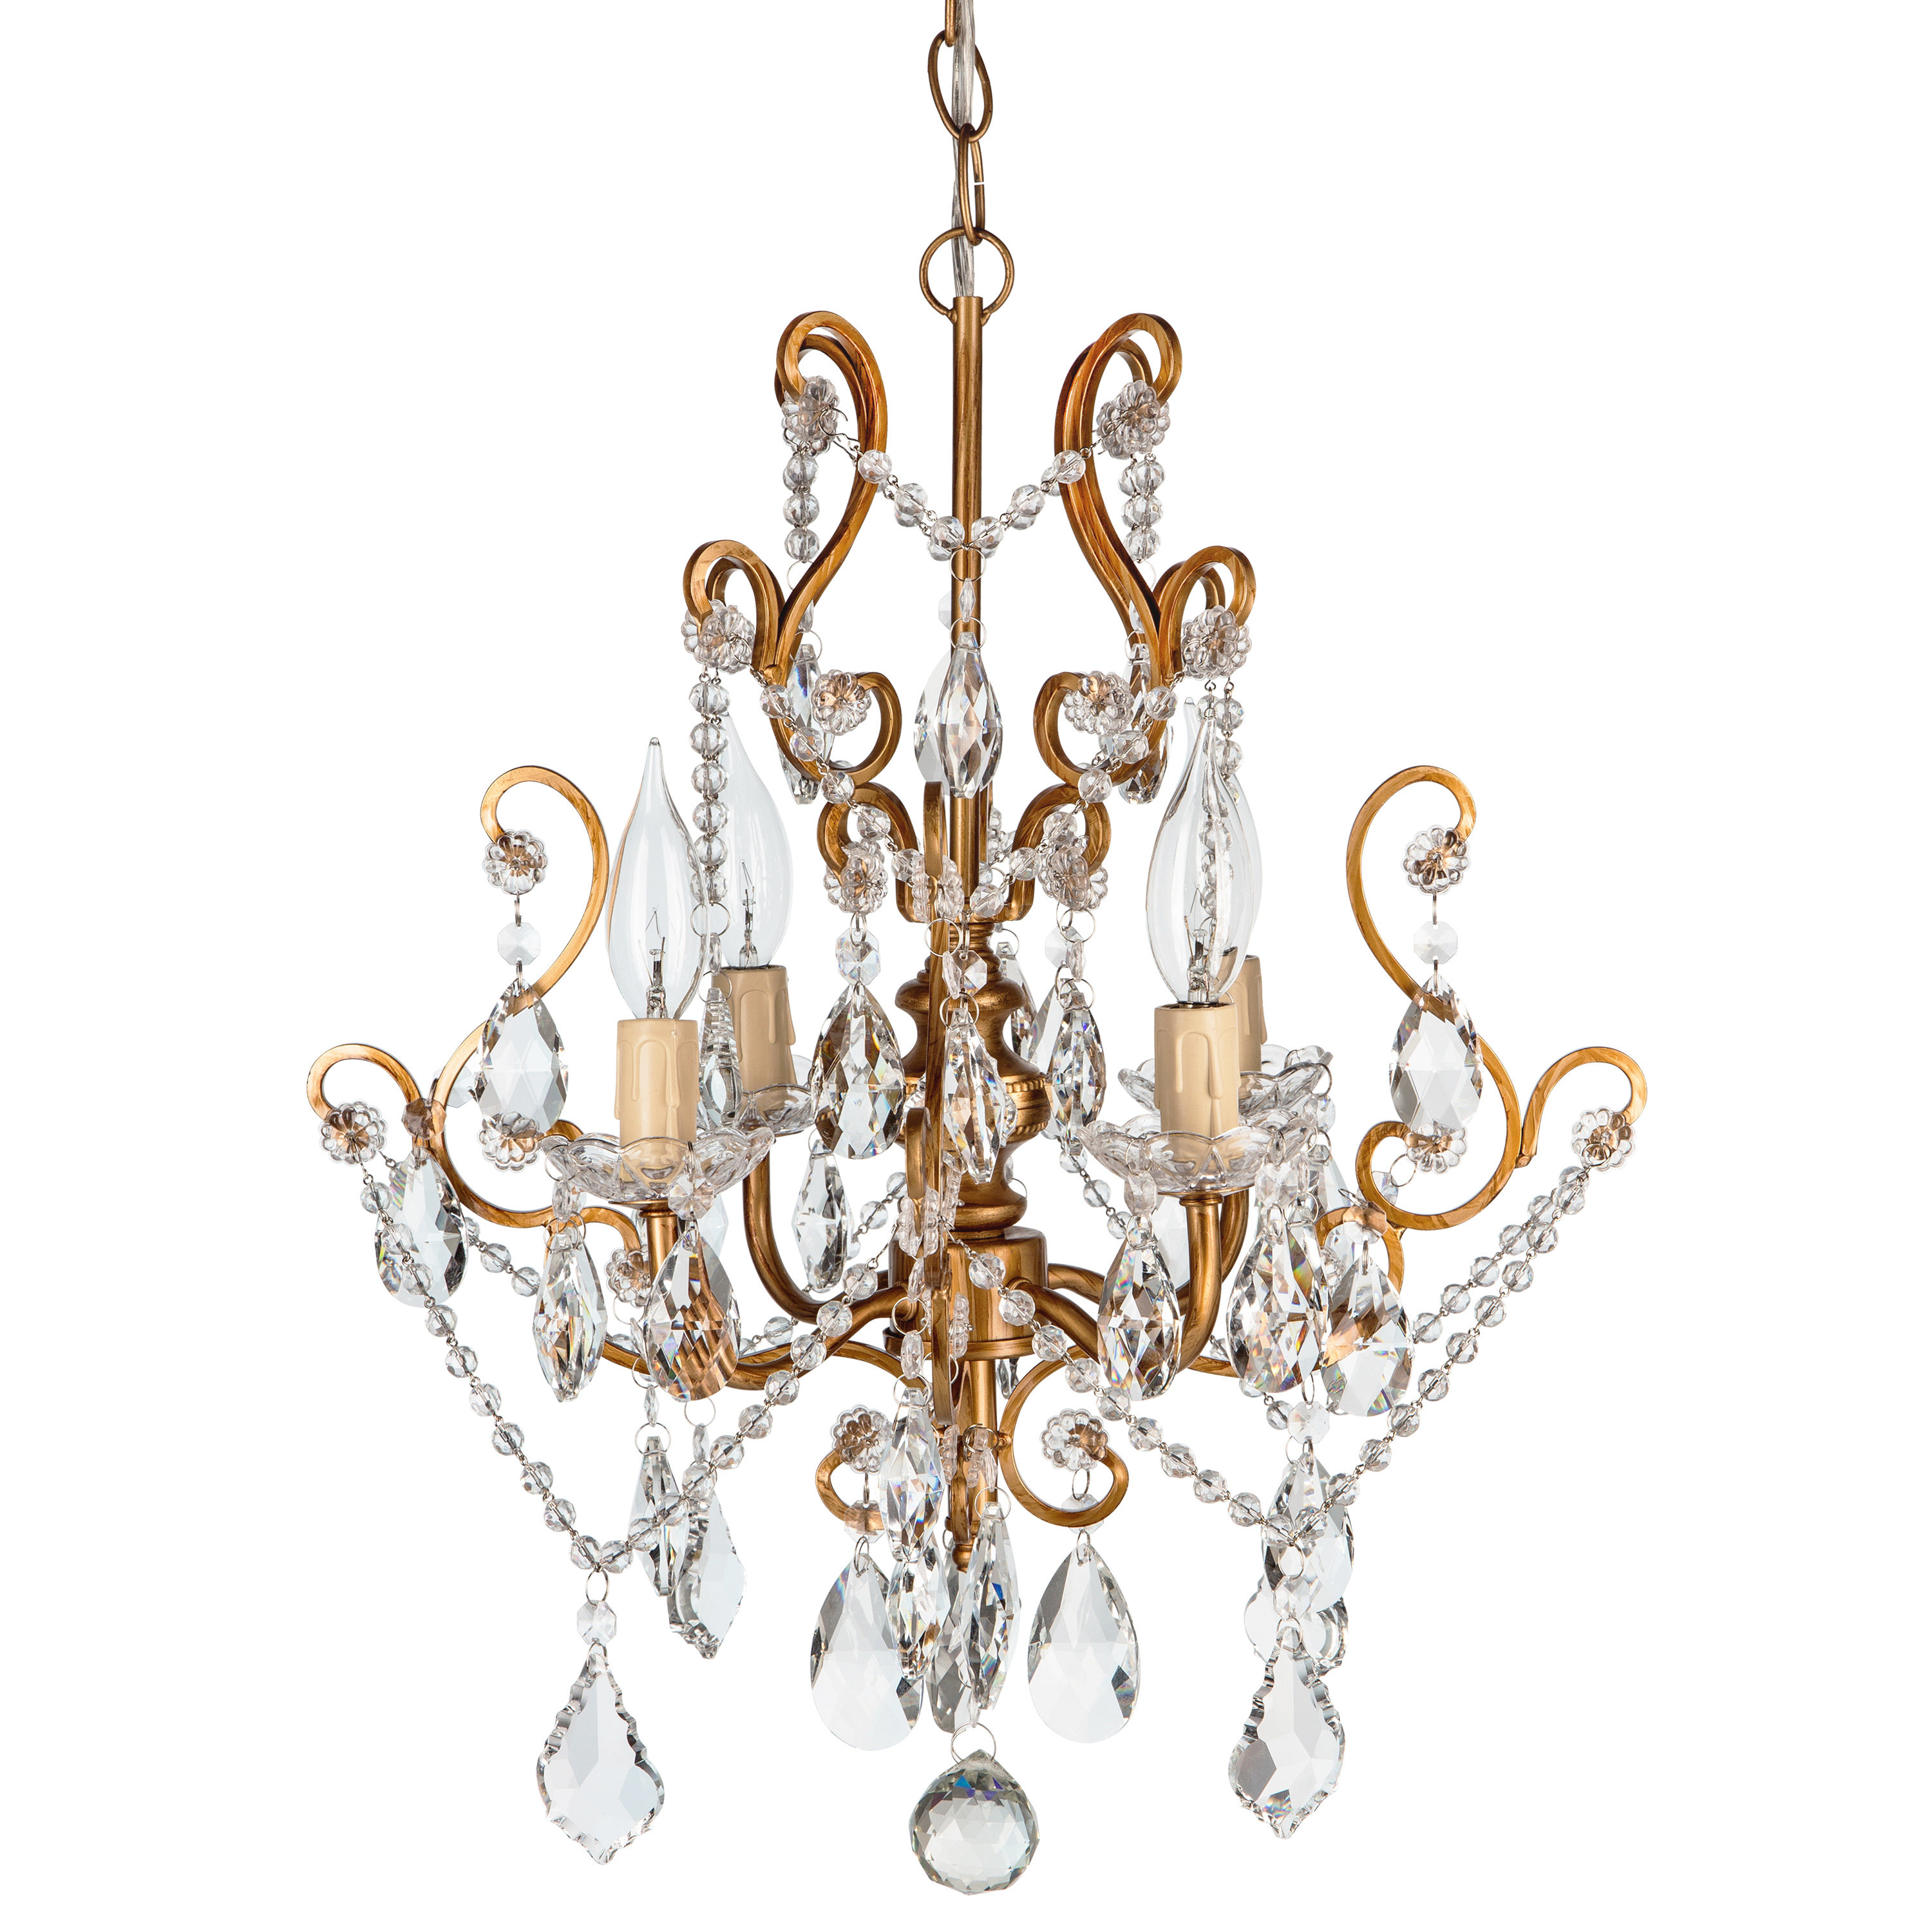 Aldora 4 Light Candle Style Chandeliers Within Well Known Flemington 4 Light Candle Style Chandelier (View 4 of 25)